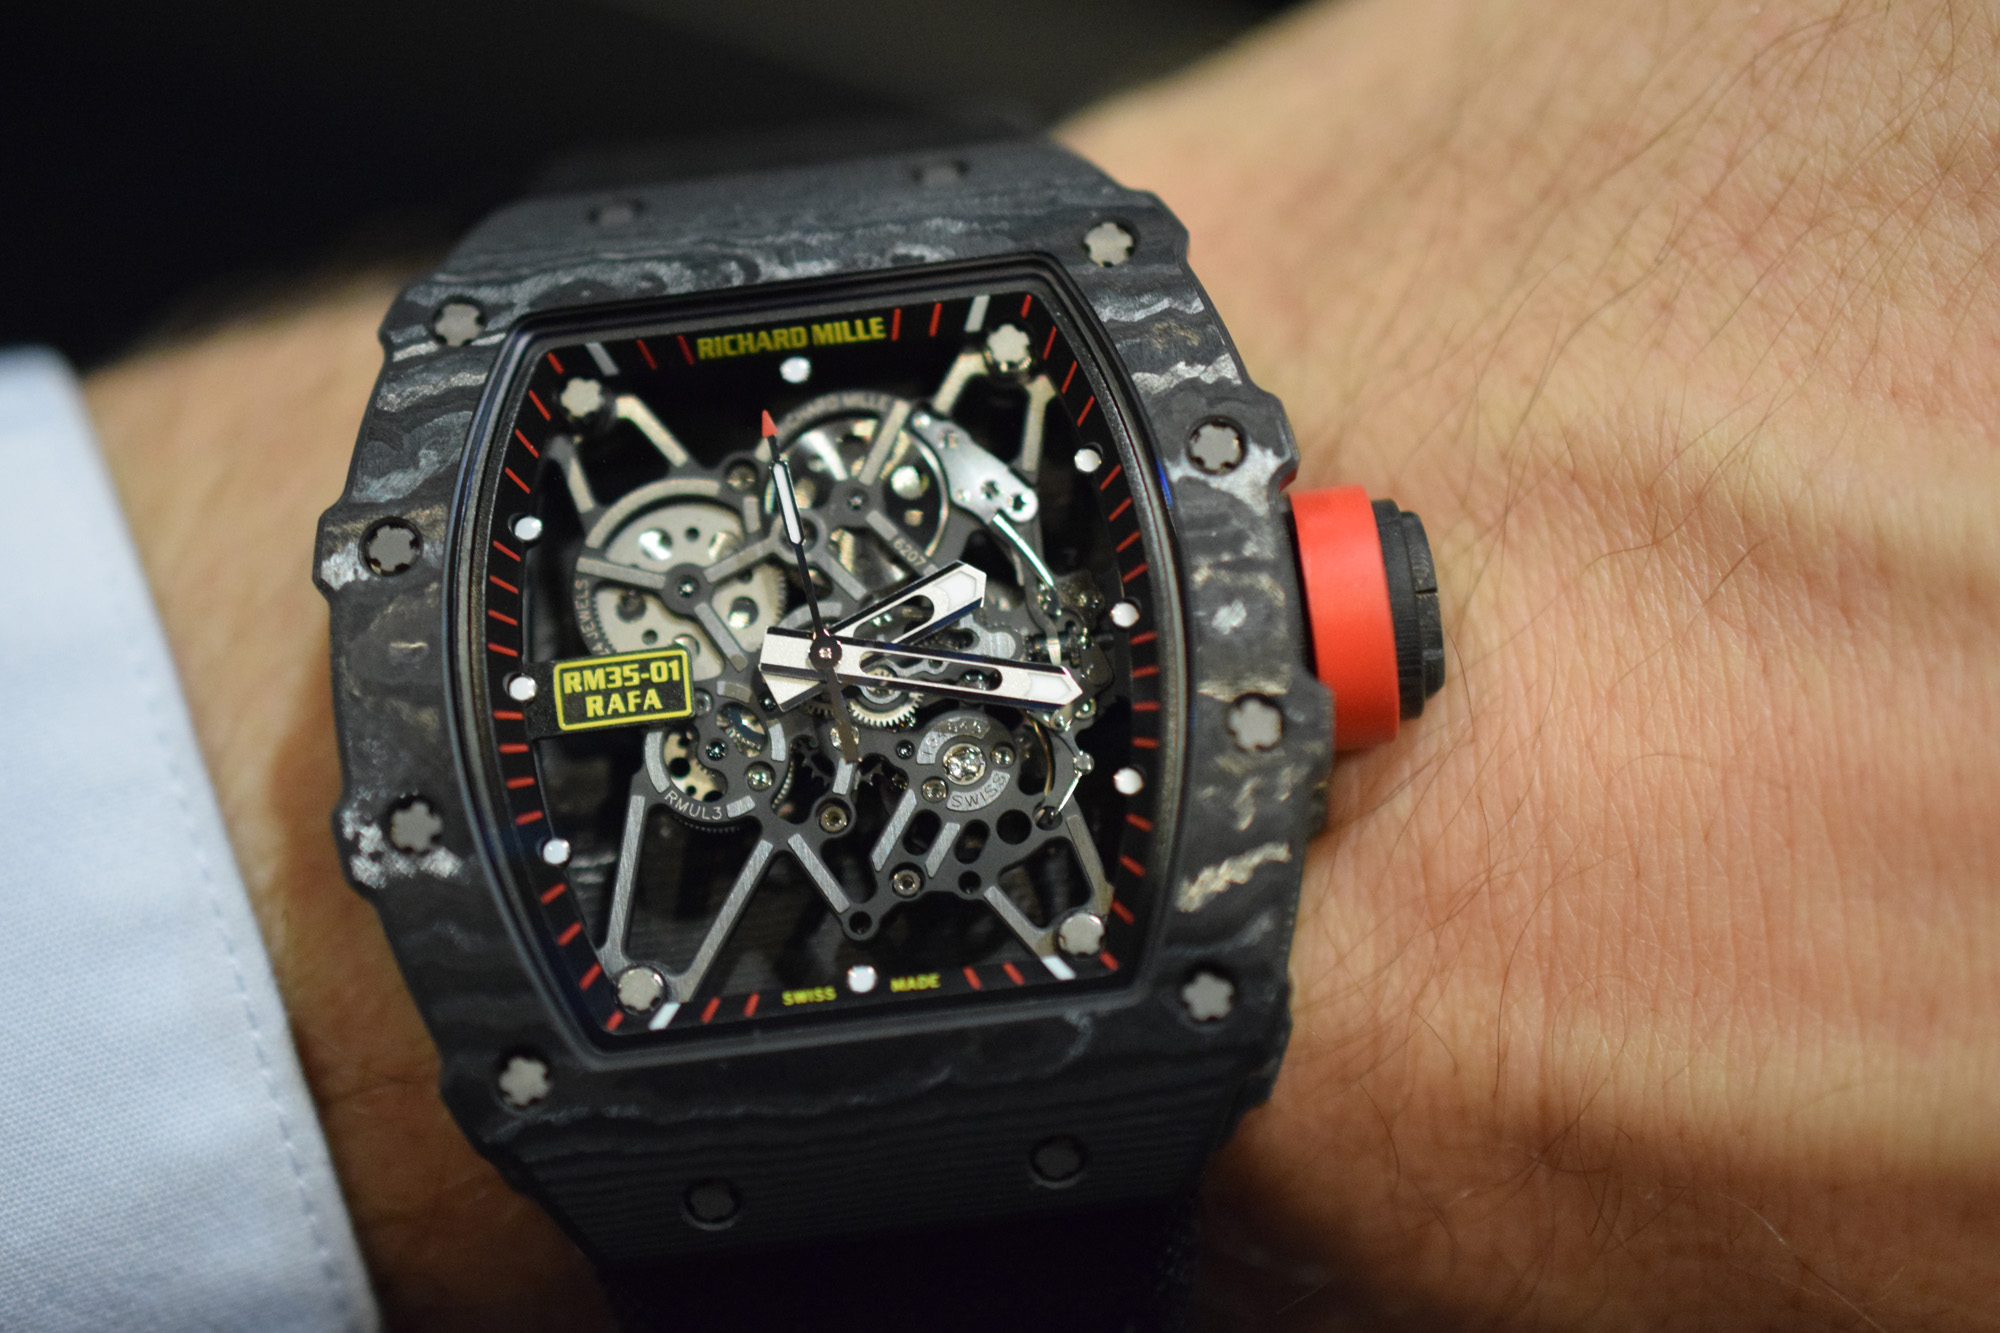 Richard Mille Rm 35 01 Baby Nadal Hands On Review